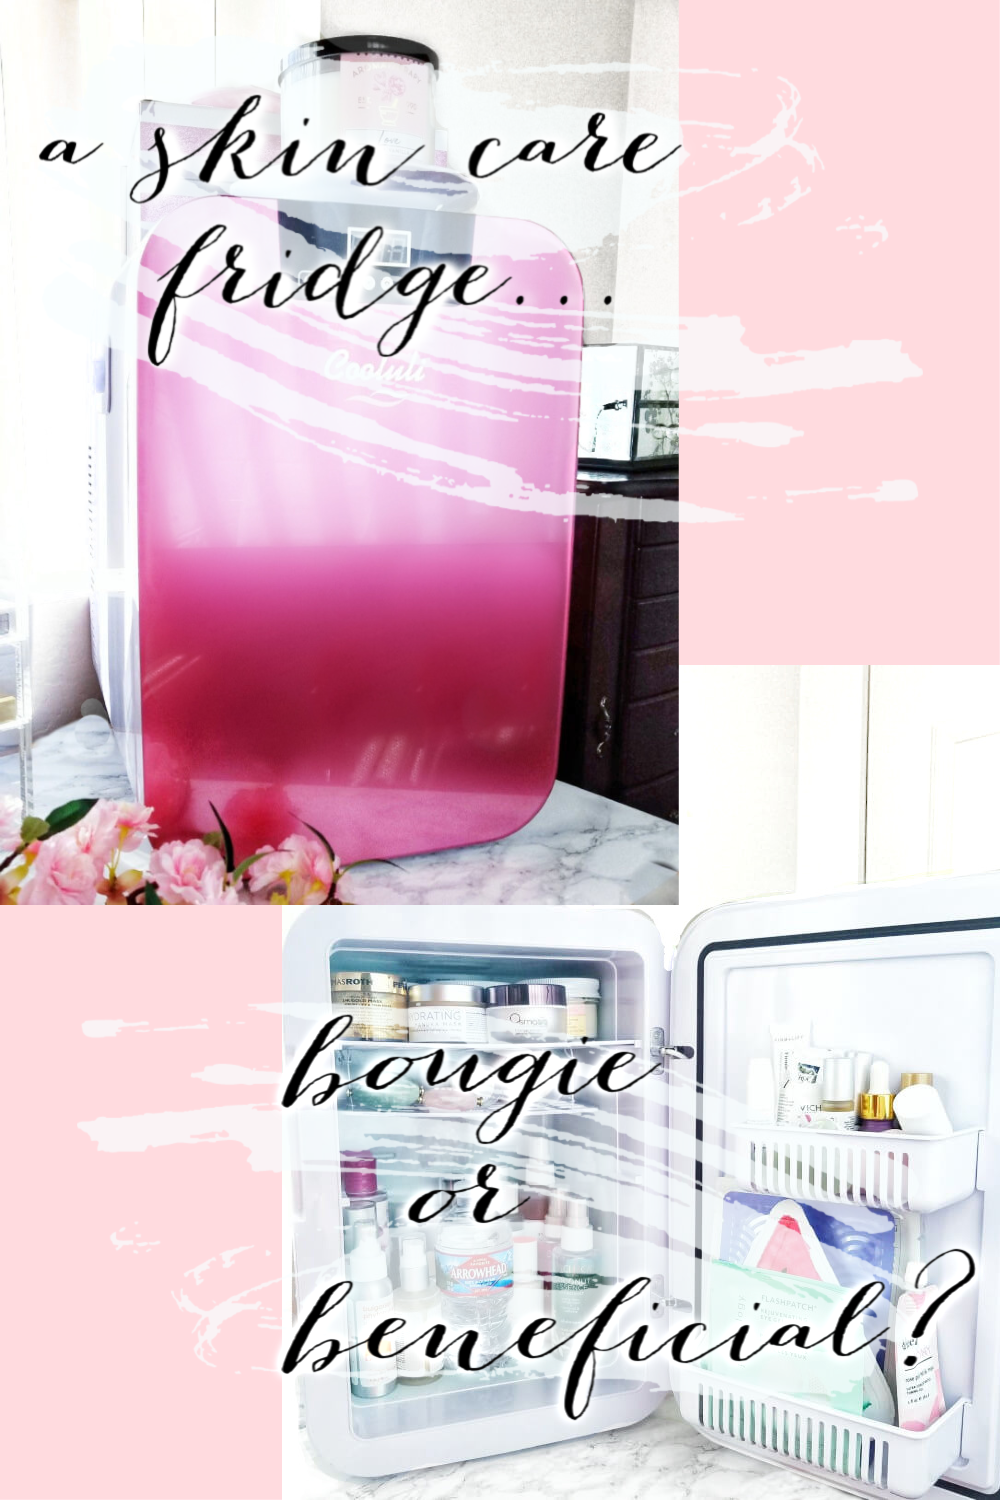 A Skin Care Fridge | Bougie or Beneficial?